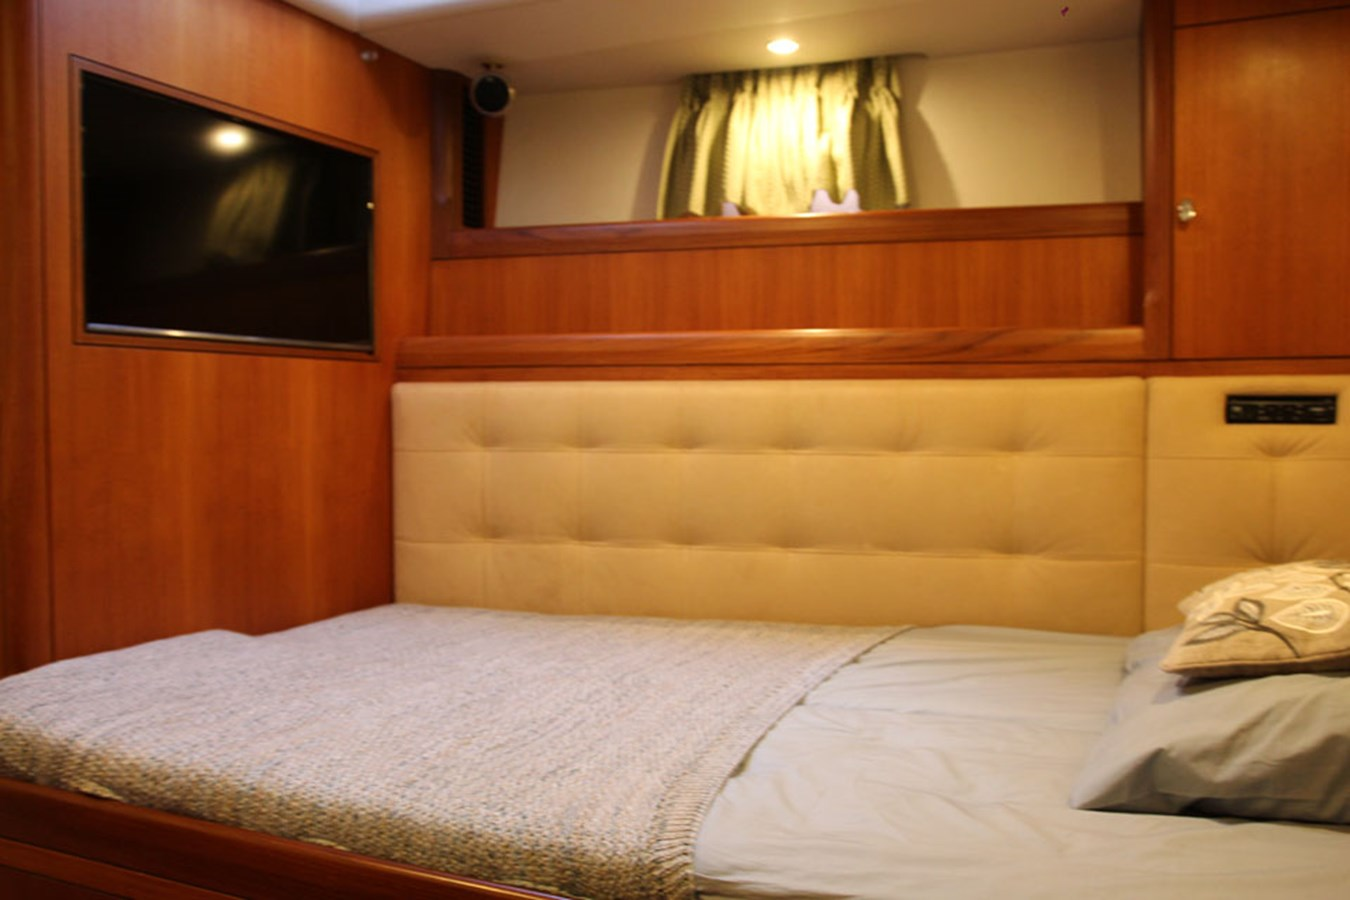 oyster-72-15 2005 OYSTER MARINE LTD Oyster 72 Cruising Sailboat 2707558